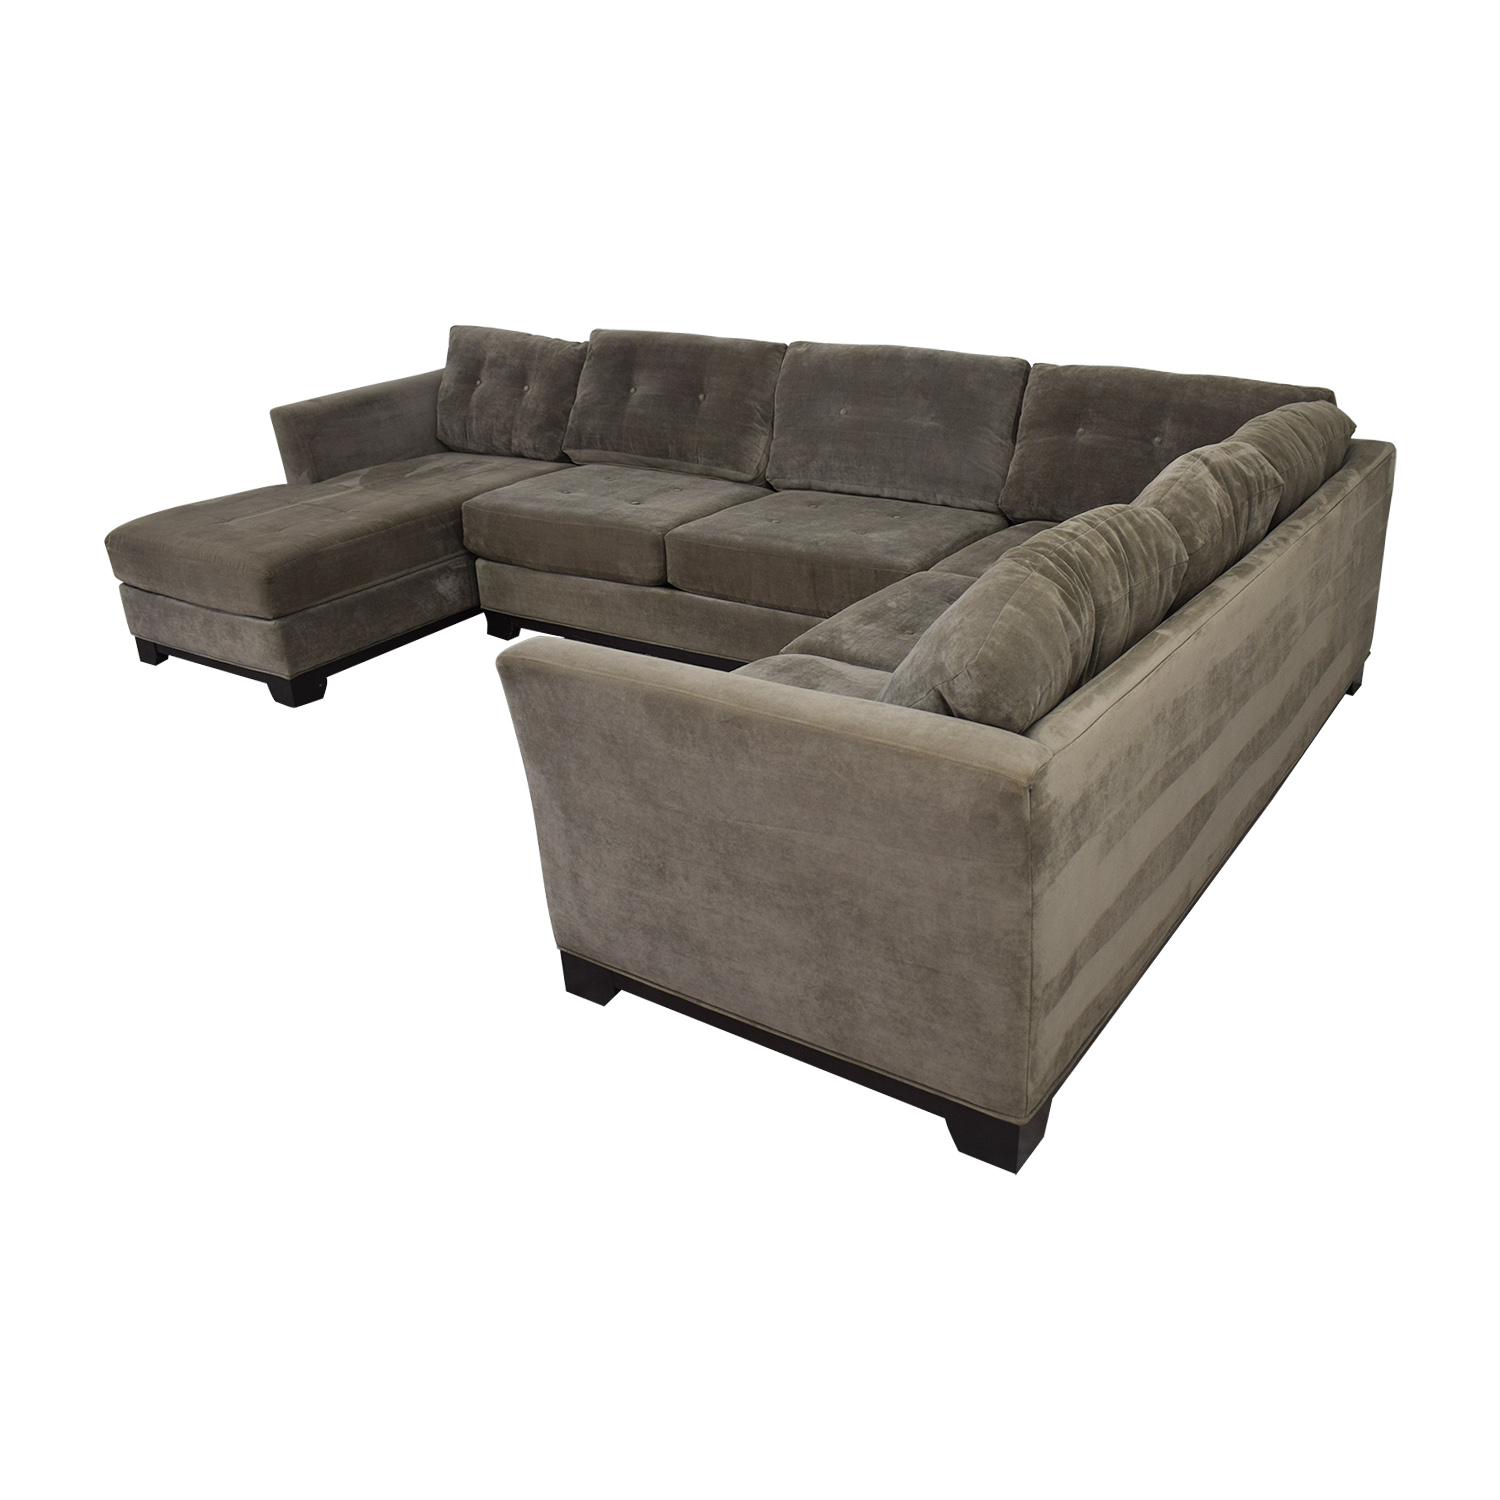 Fantastic 75 Off Jonathan Louis Jonathan Lewis Elliot Grey Tufted Microfiber Chaise U Shaped Sectional Sofas Ocoug Best Dining Table And Chair Ideas Images Ocougorg